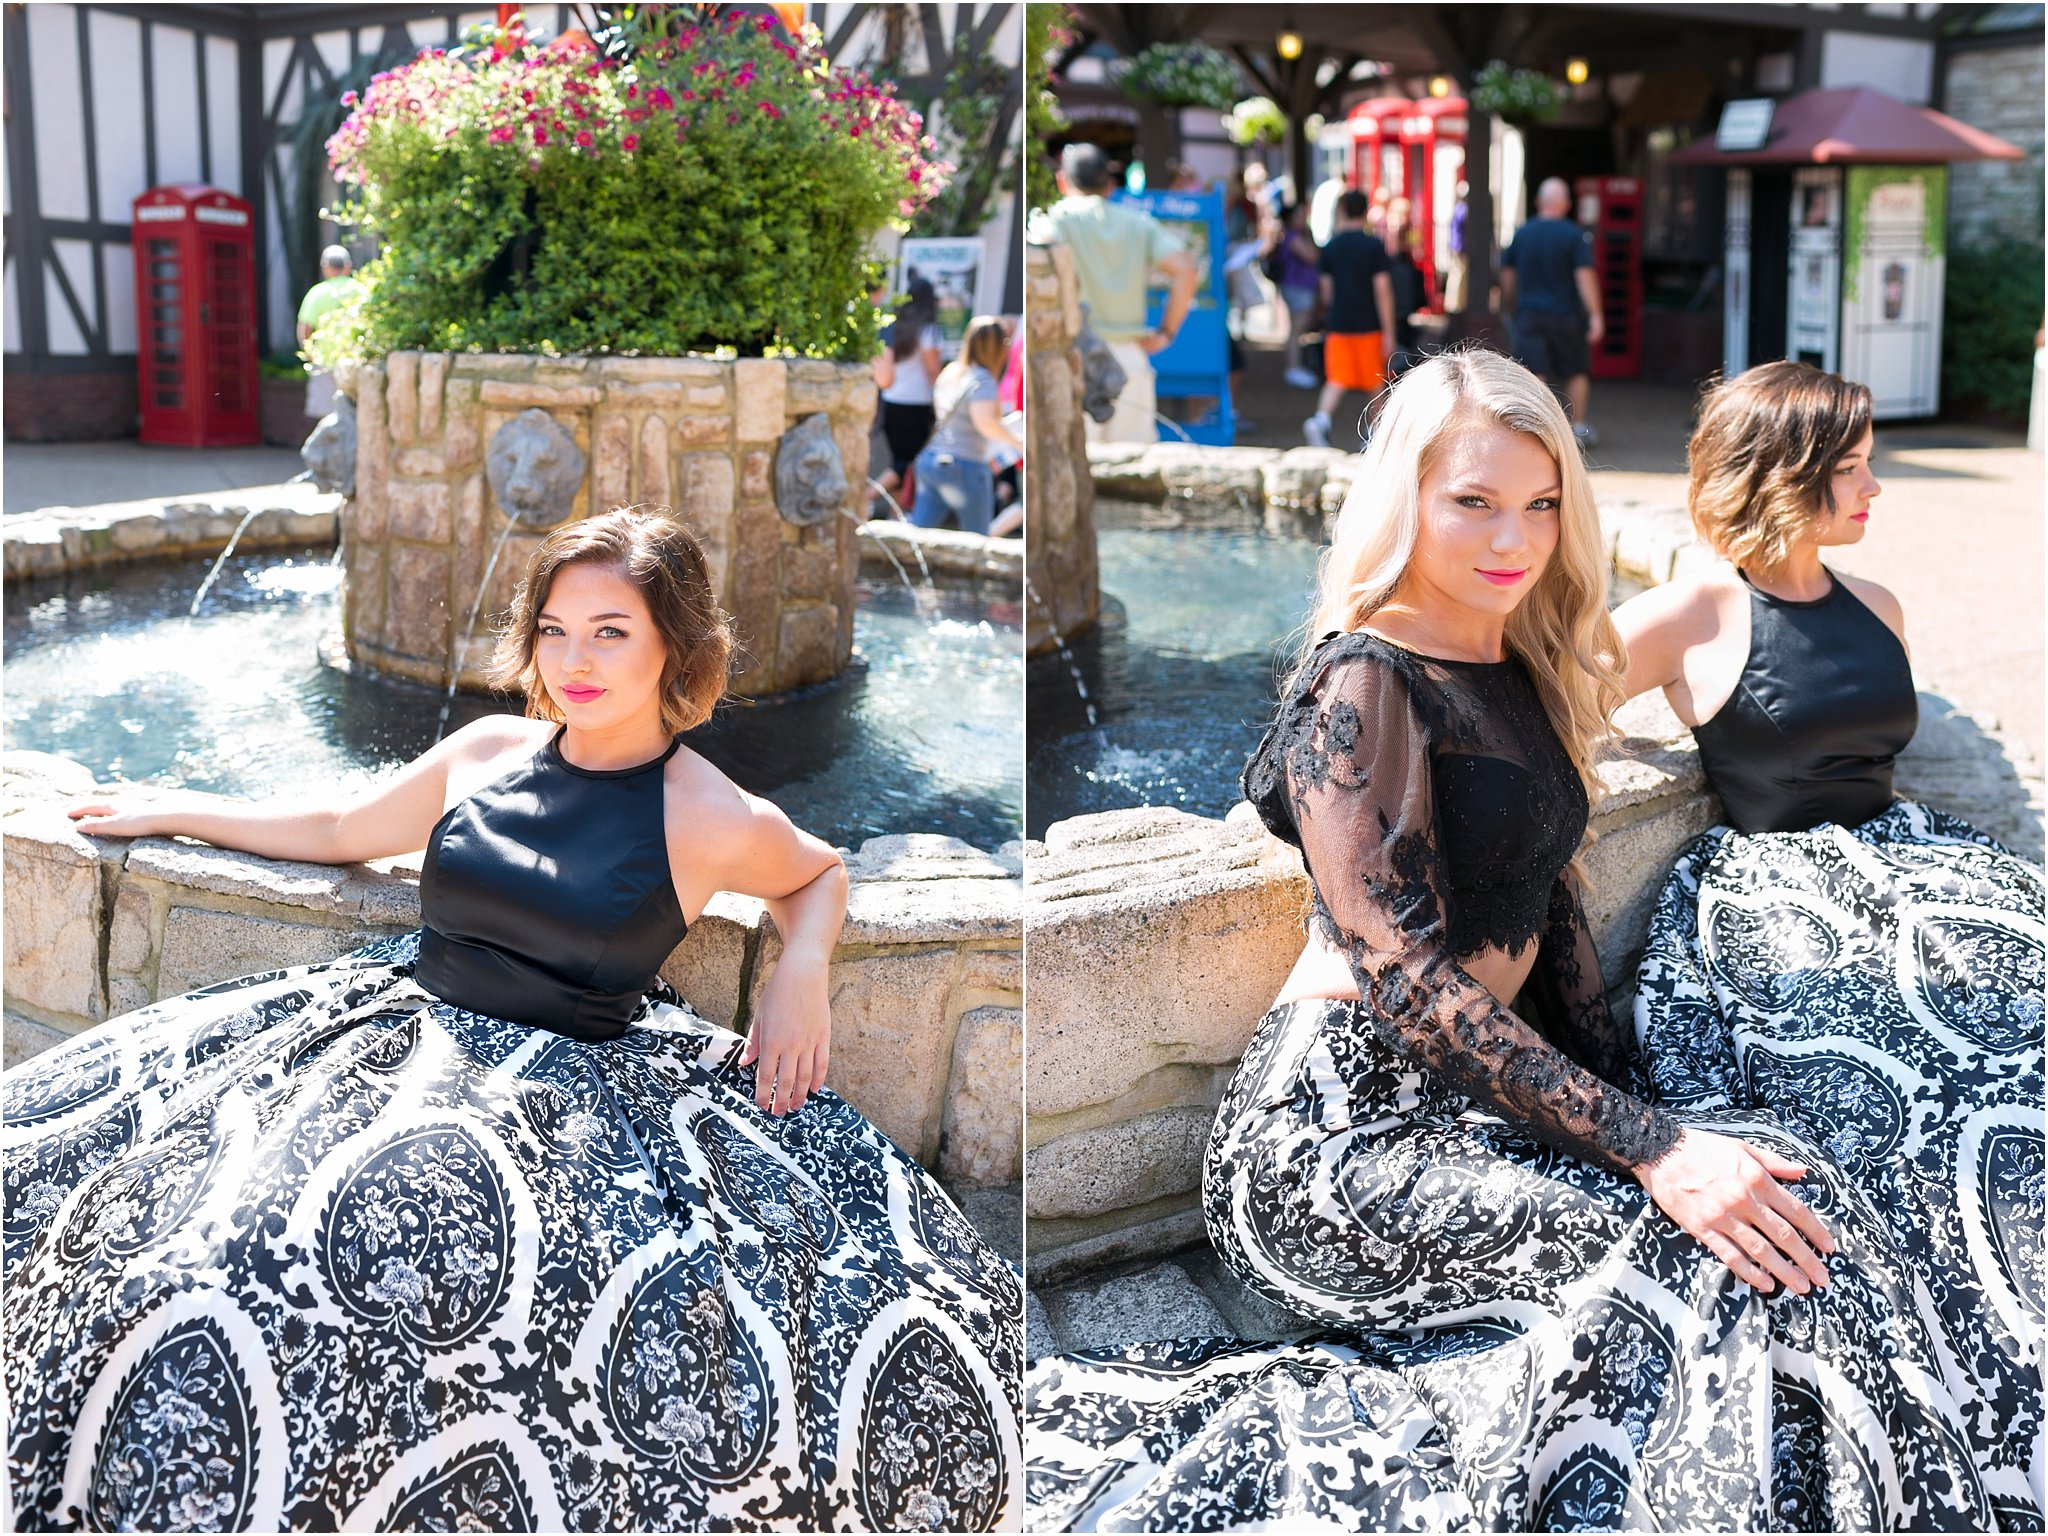 jessica_ryan_photography_busch_gardens_williamsburg_virginia_photographer_formal_dresses_portraits_fun_vibrant_portraits_faviana_designer_sherri_hill_designer_3136